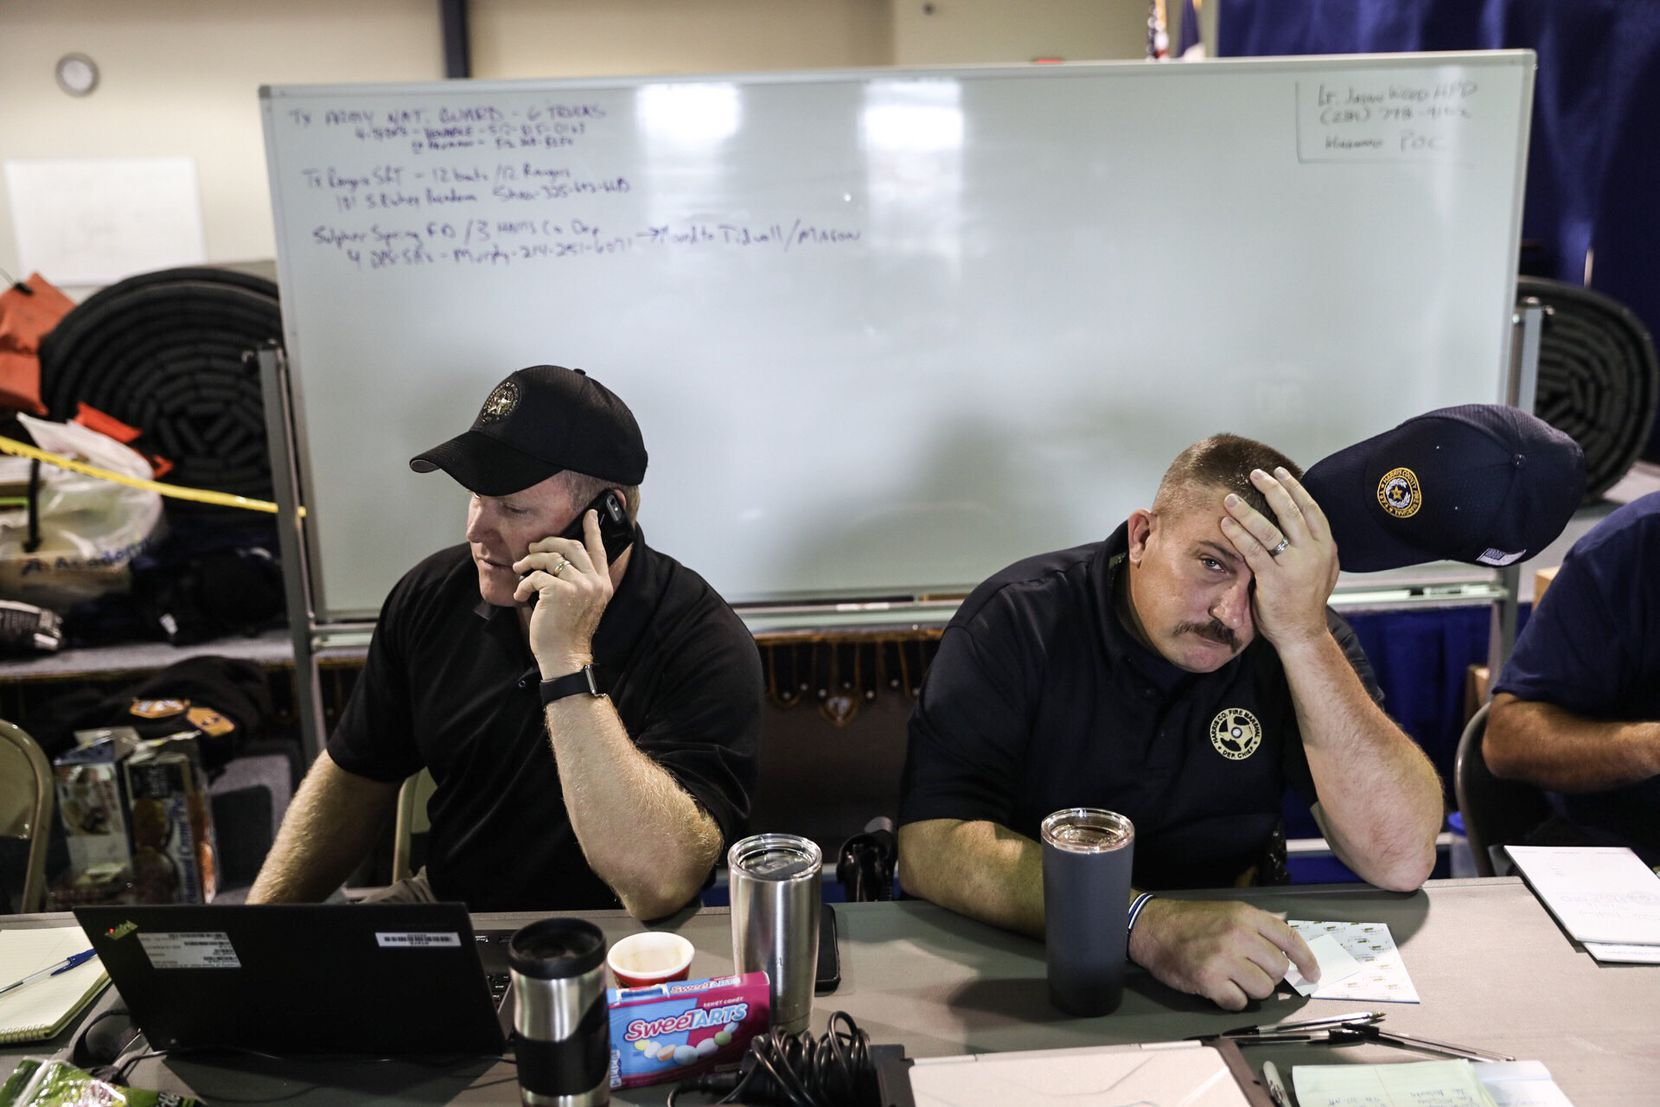 From left, Mark Koenig, a lieutenant with the Texas Department of Public Safety, and Chad Shaw, a deputy chief with the Harris County Fire Department, coordinate rescue operations in Houston on Wednesday, Aug. 30, 2017. With floodwaters still rising in some parts of the Houston area on Wednesday, officials cautioned that they still had no way to gauge the scale of the catastrophe -- how many were dead, how many were taking shelter inland or still hunkered down, or how many homes were destroyed.